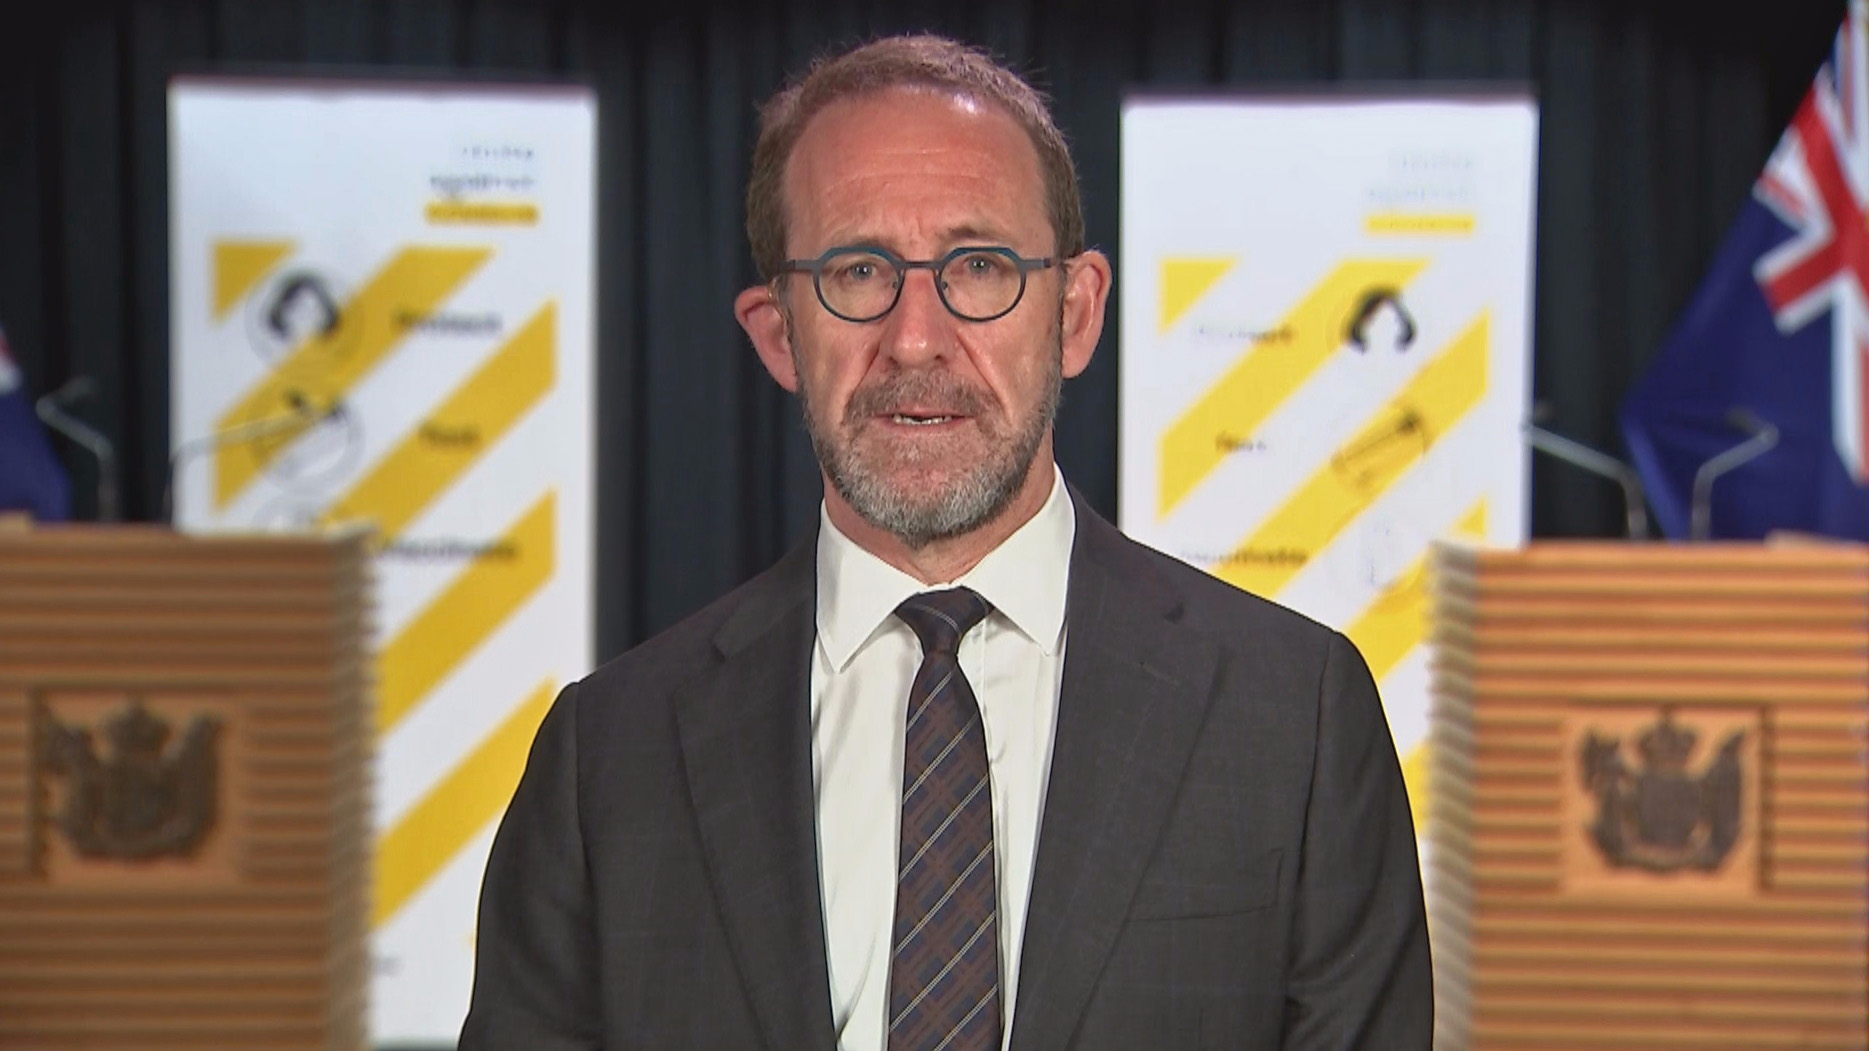 Minister: Covid vaccine disparities evidence health system not working for Māori